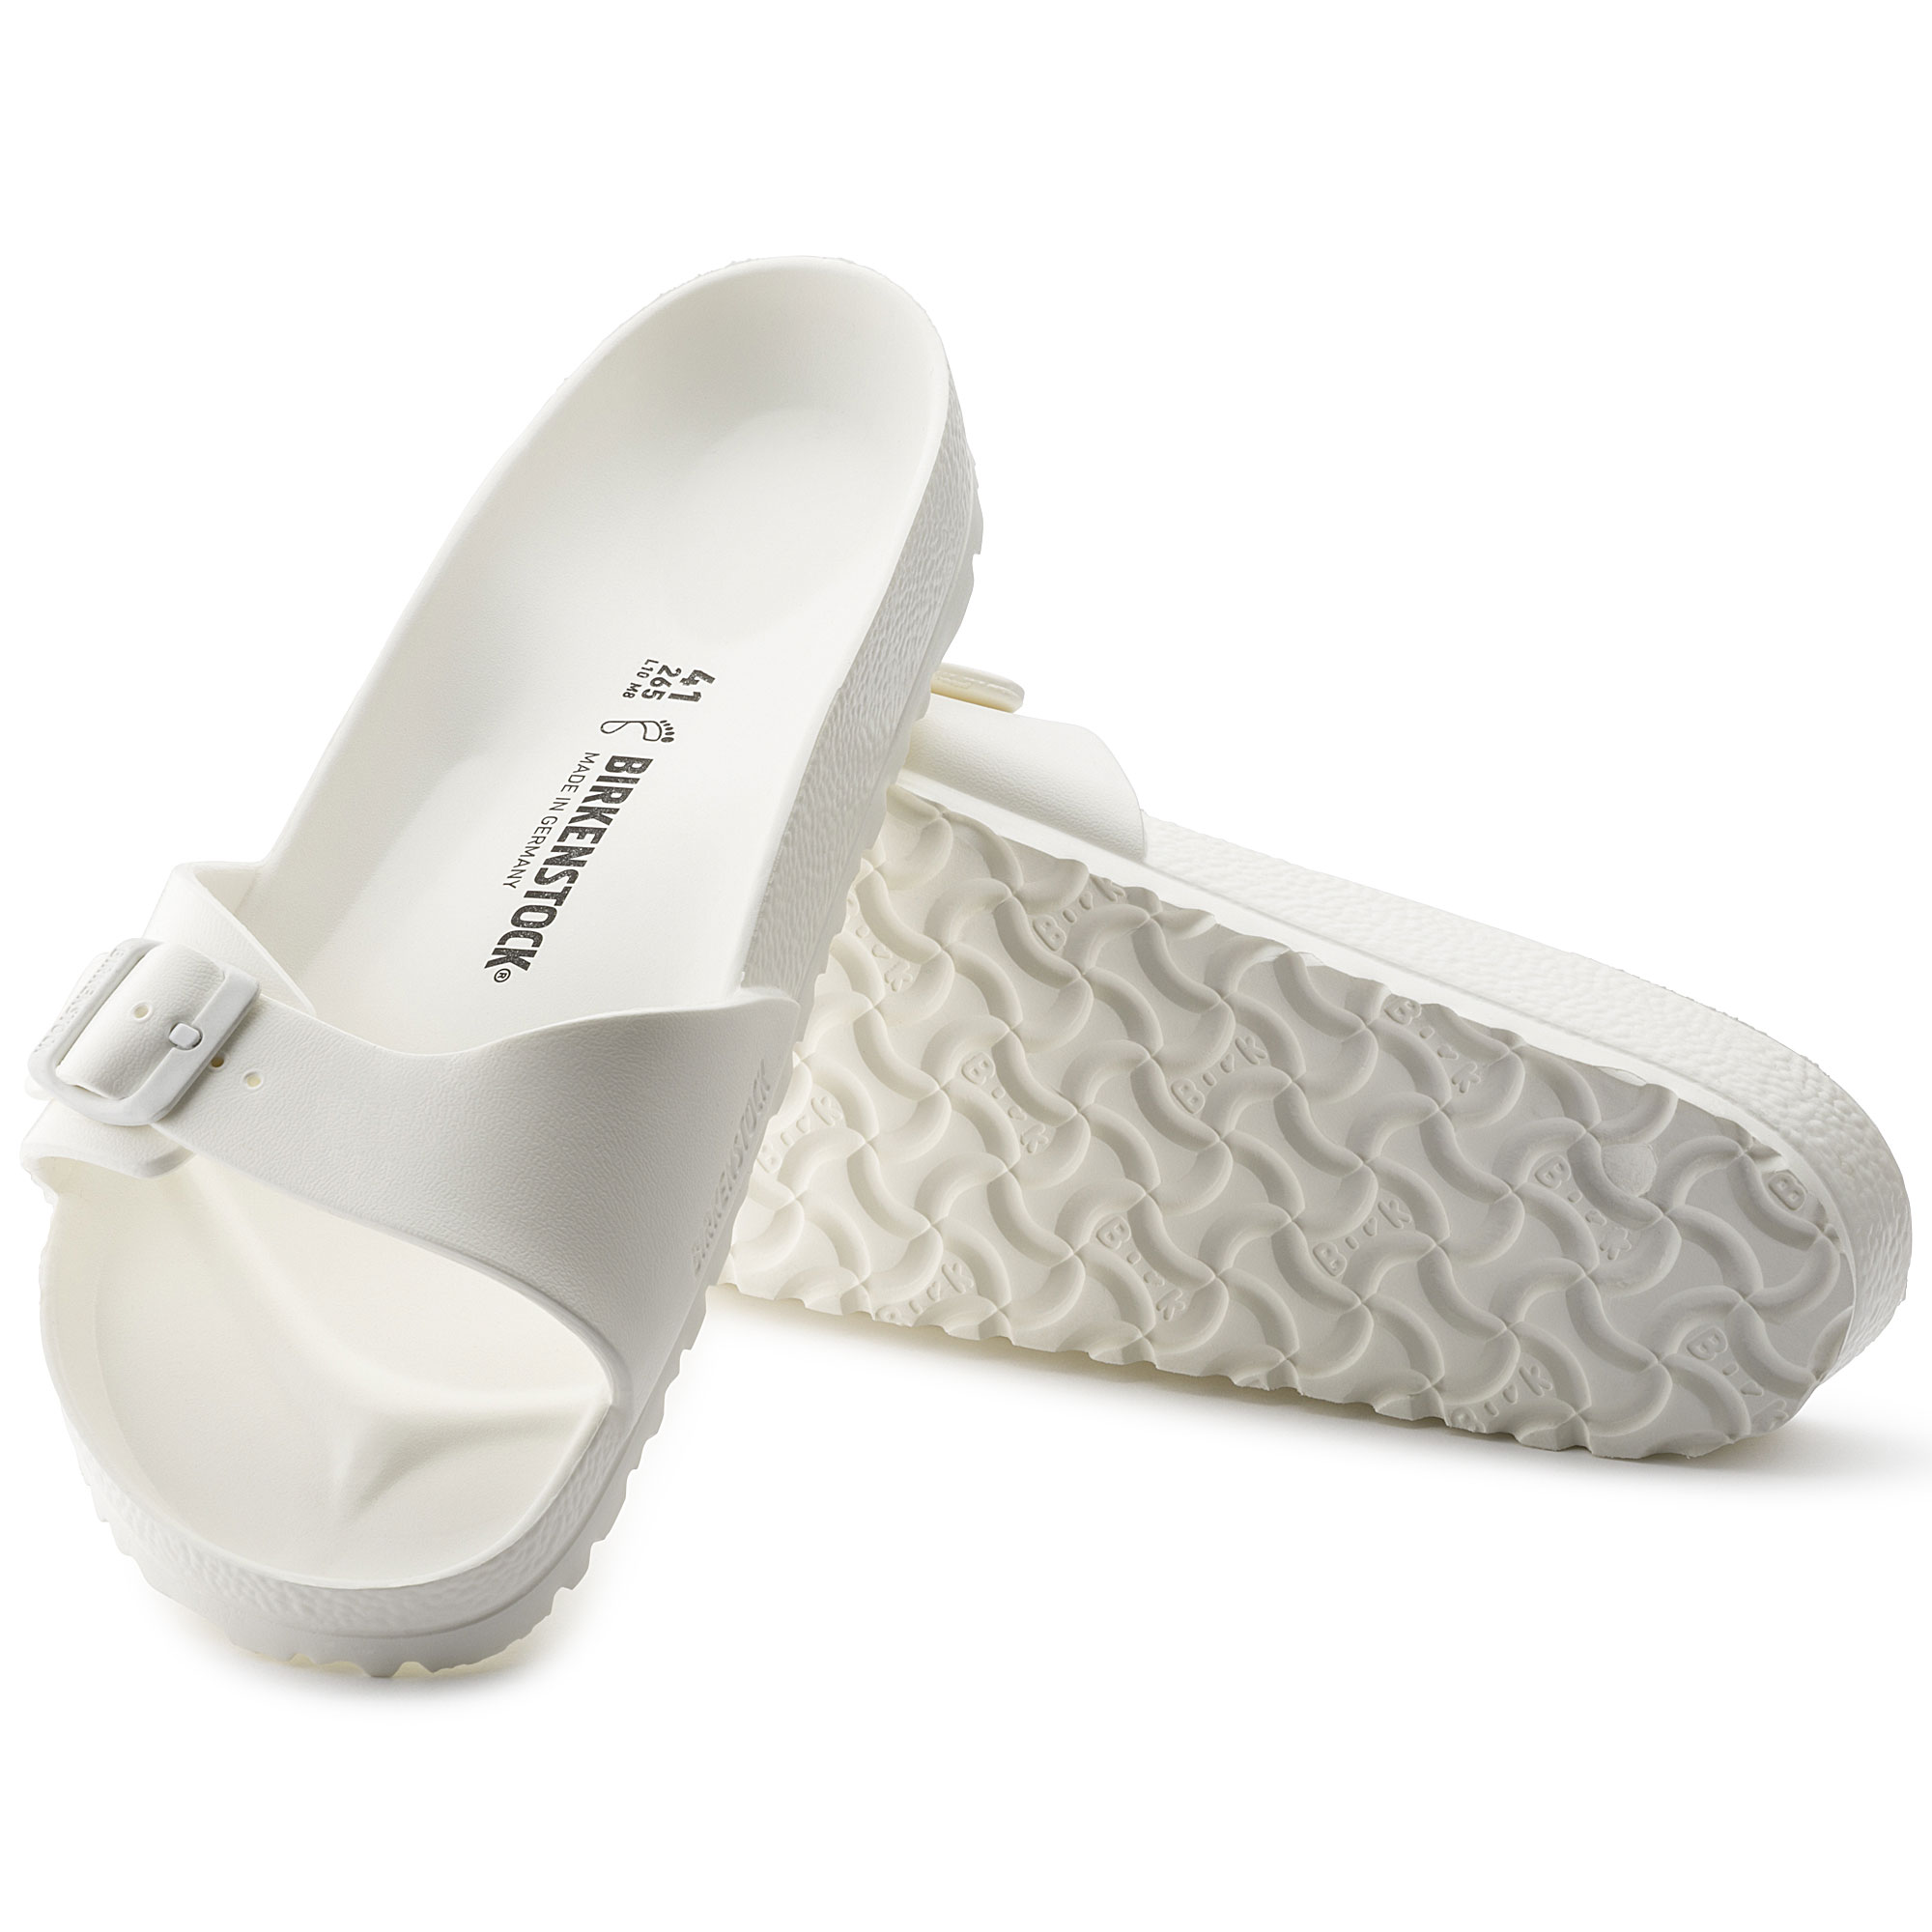 Birkenstock Madrid White EVA Sandal for Women Size 41 EU